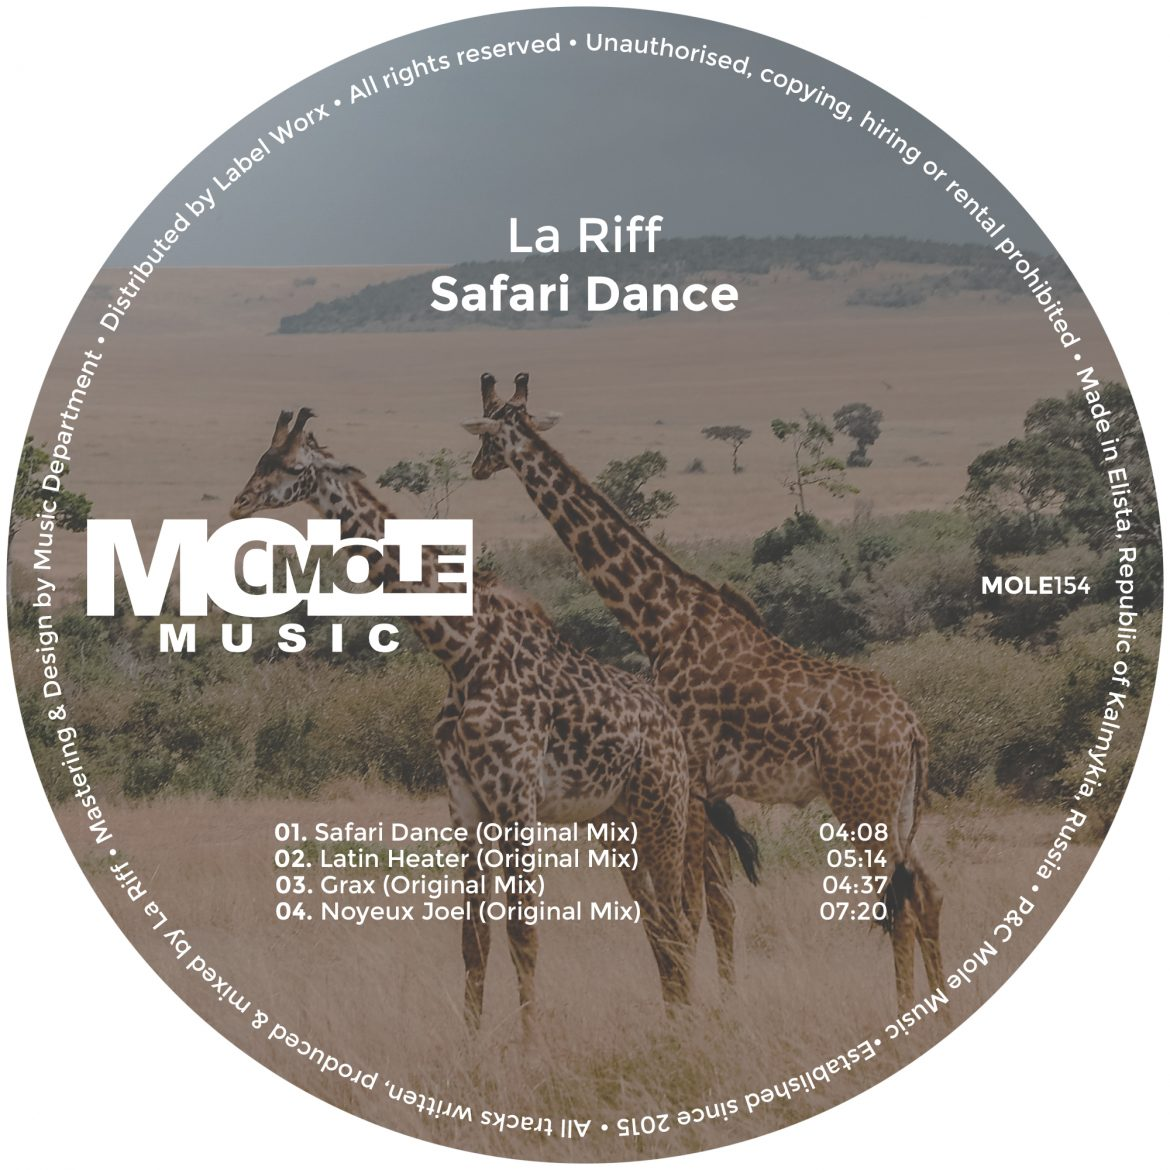 La Riff - Safari Dance | Mole Music